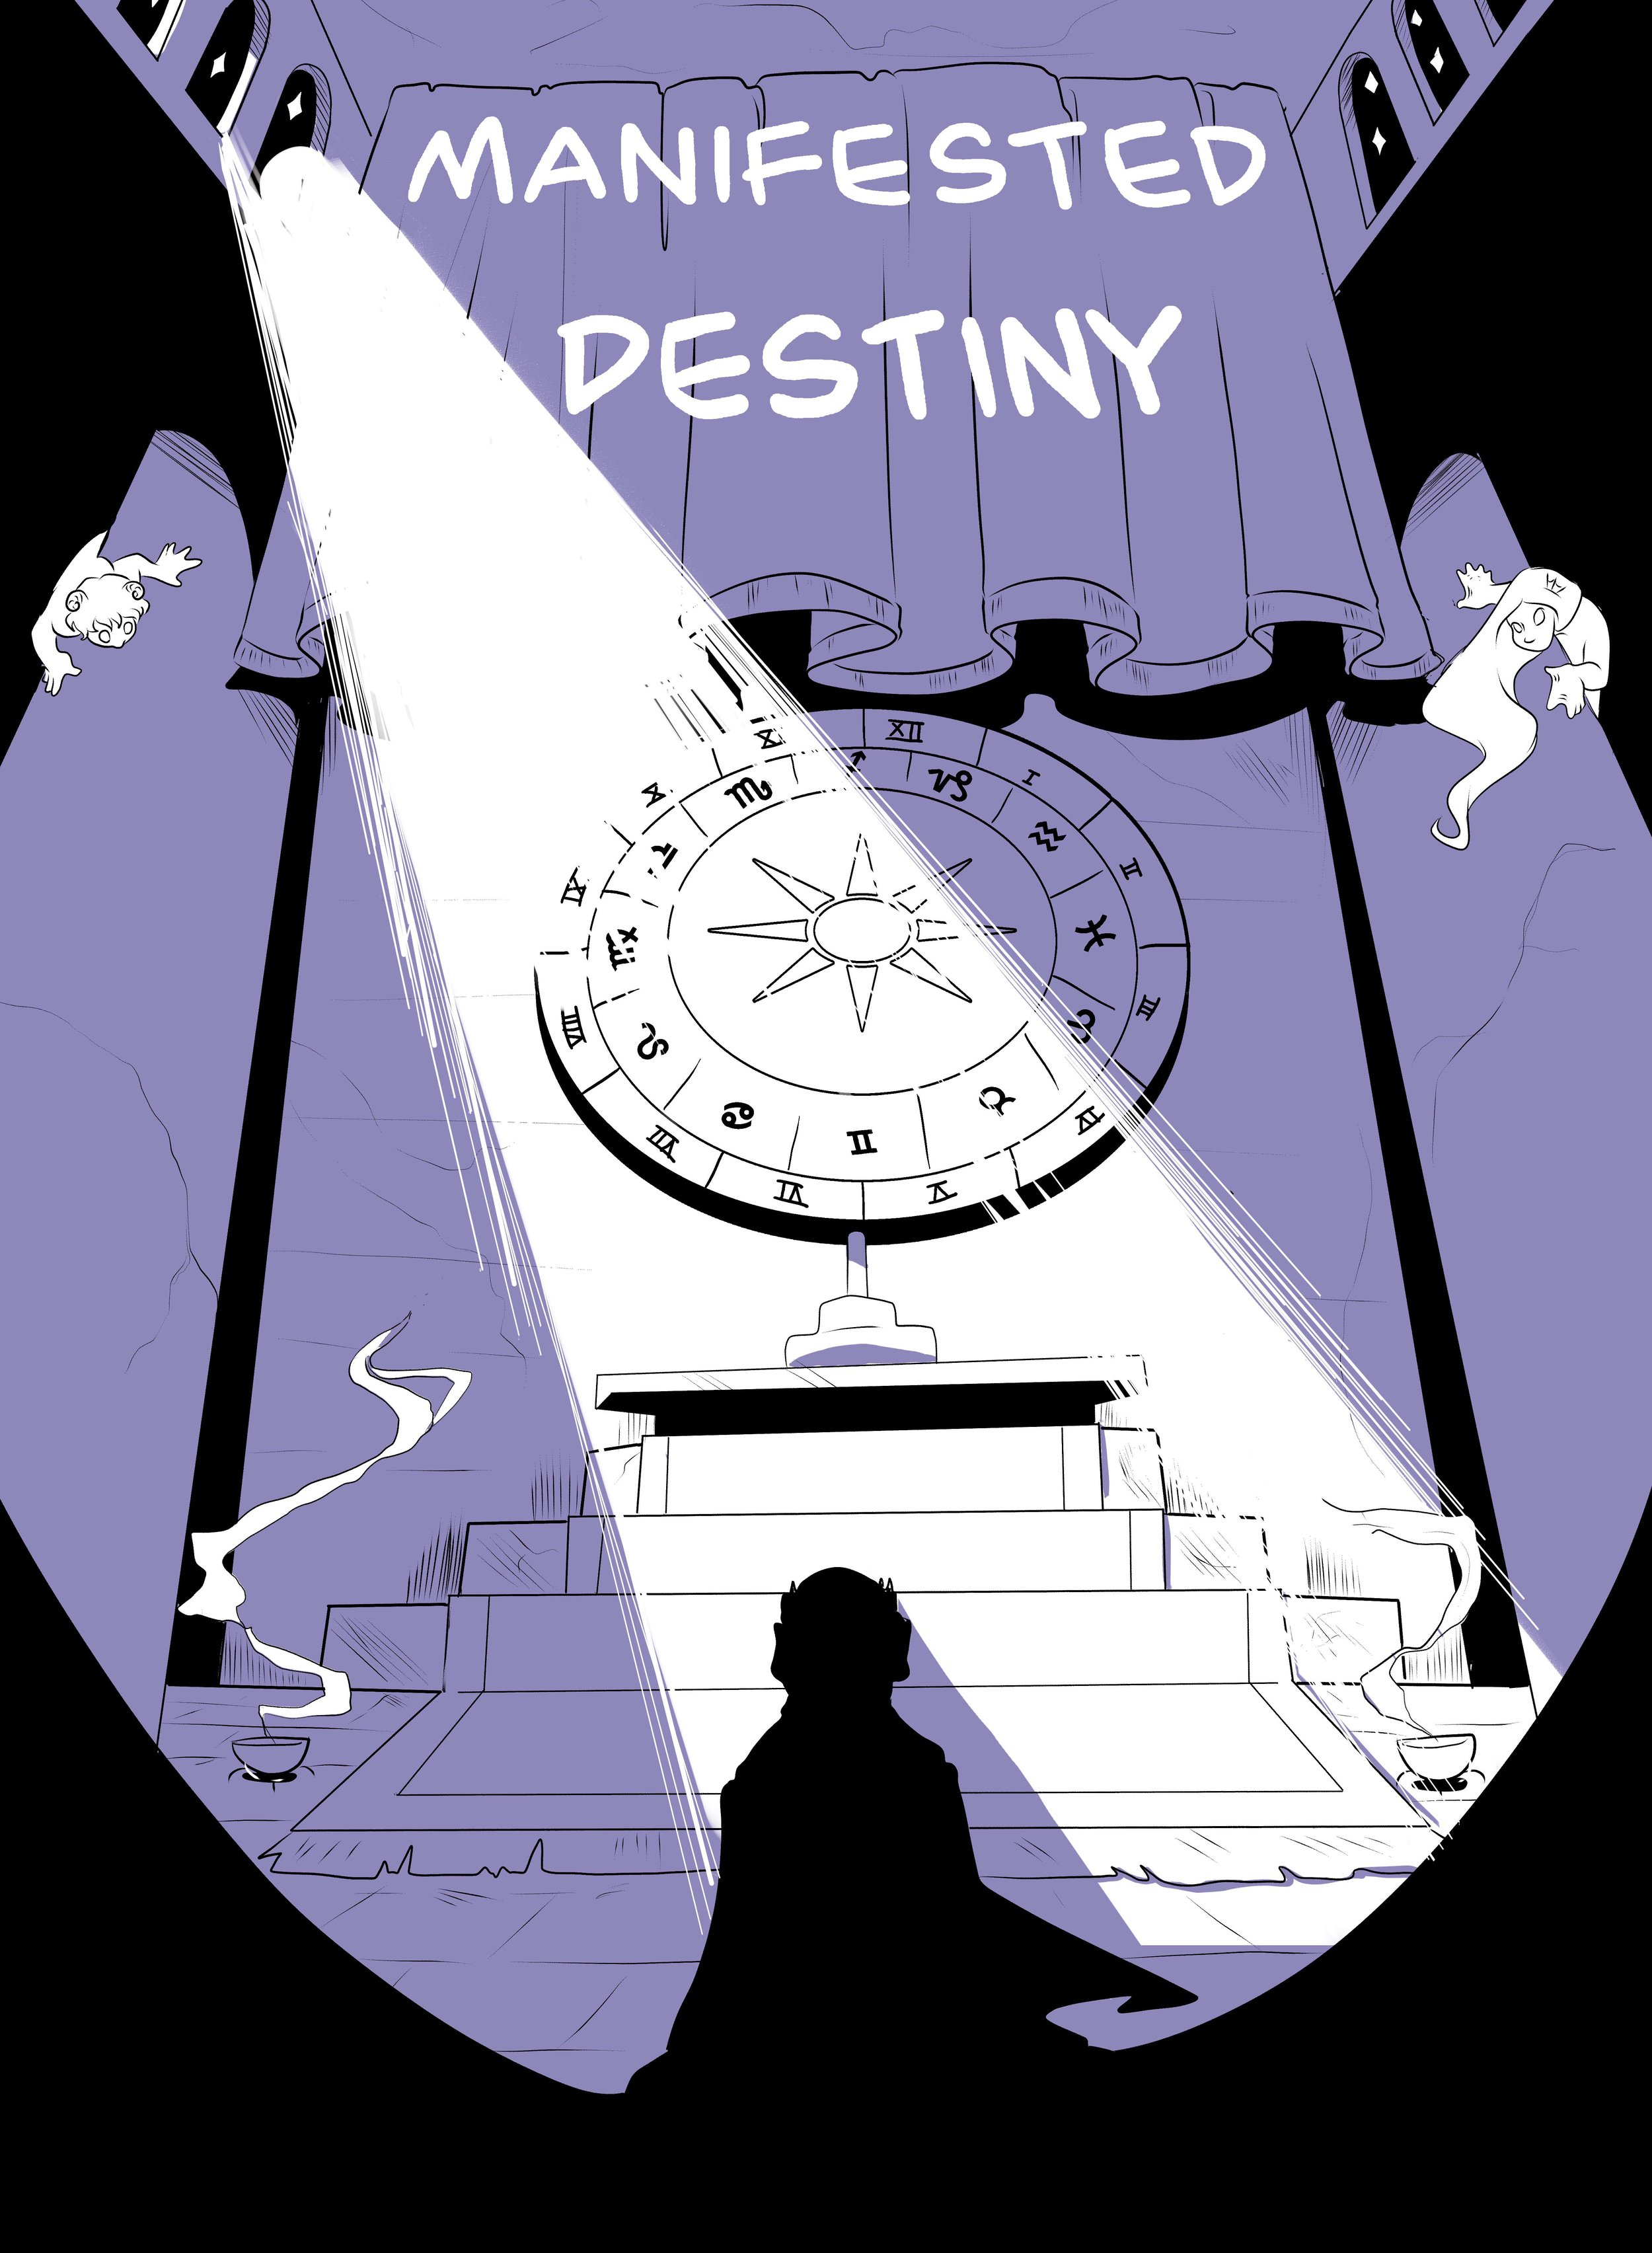 """Manifested Destiny -   2016    When the king of an ancient civilization summons the astrological signs Aries and Pieces he seals not only the his own fate but the fate of his kingdom proving that one often meets his destiny on the road he takes to avoid it...  A 16 page fantasy story completed as part of a 60 page anthology, the theme of which is """"Astrology"""" - 1 month work period"""